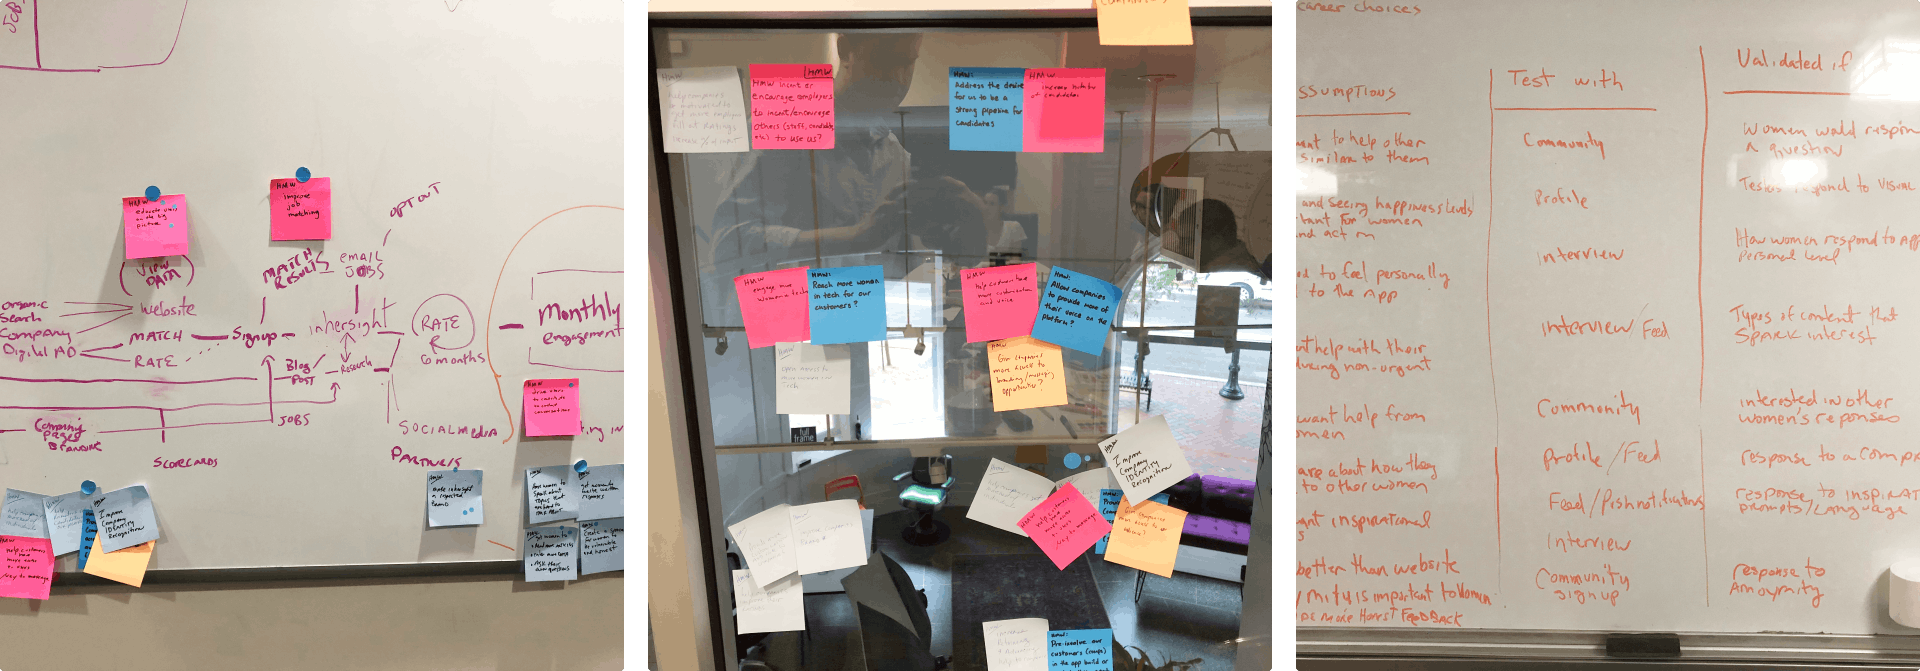 Three images of the InHerSight design sprint; a critical path journey on  a whiteboard, post-its gathered together from how might we exercise, an assumptions test table on the whiteboard